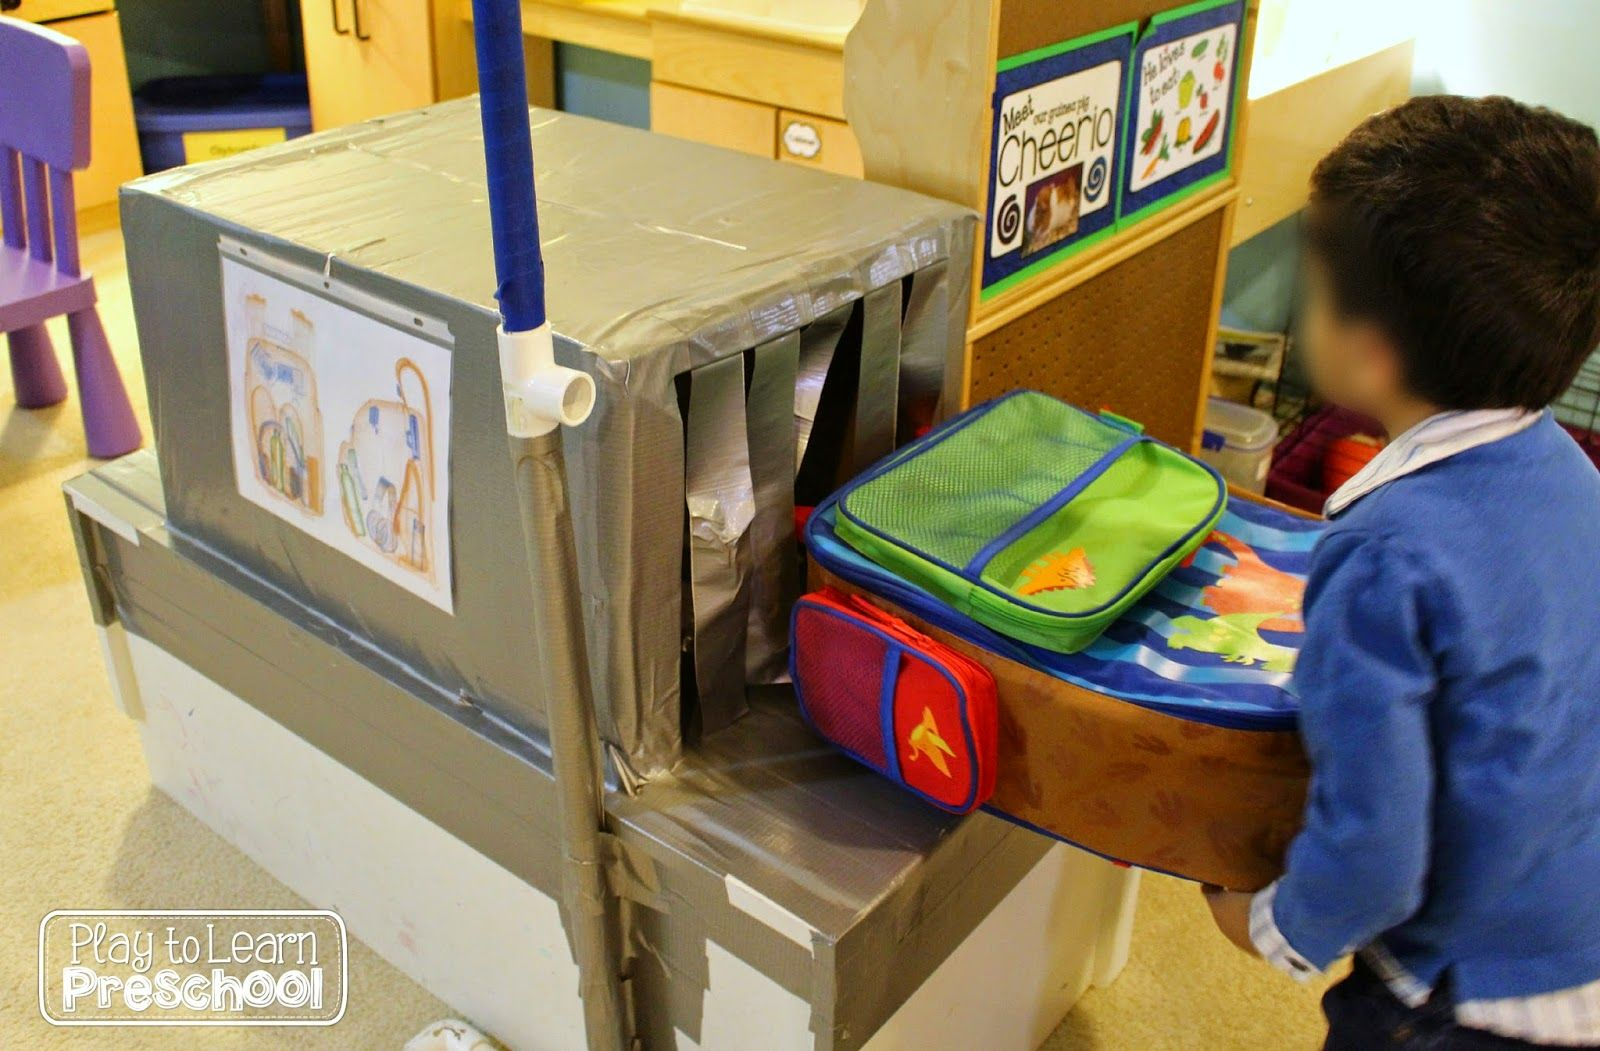 Airport Dramatic Play Dramatic play centers, Dramatic